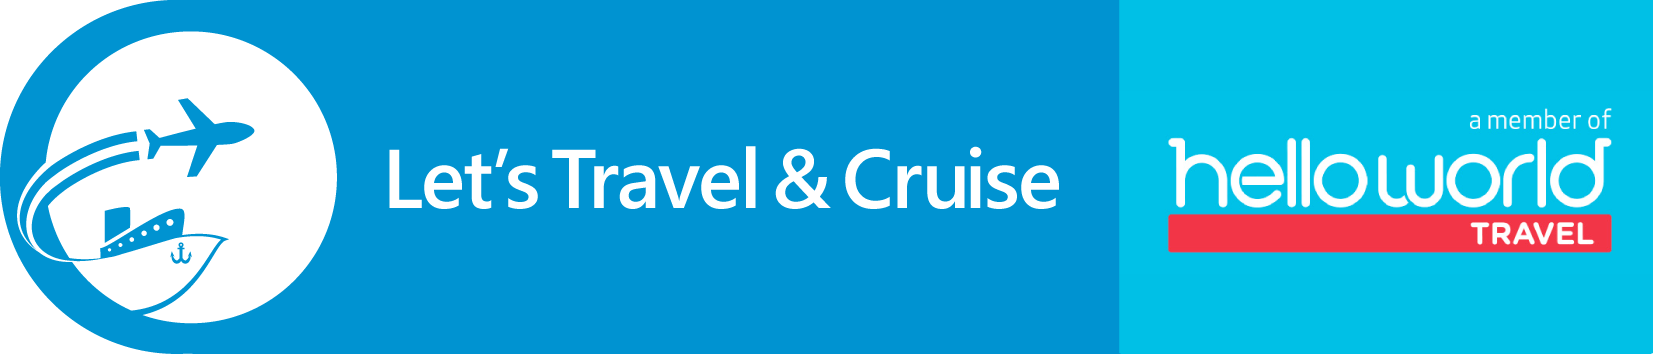 Let's Travel & Cruise Logo